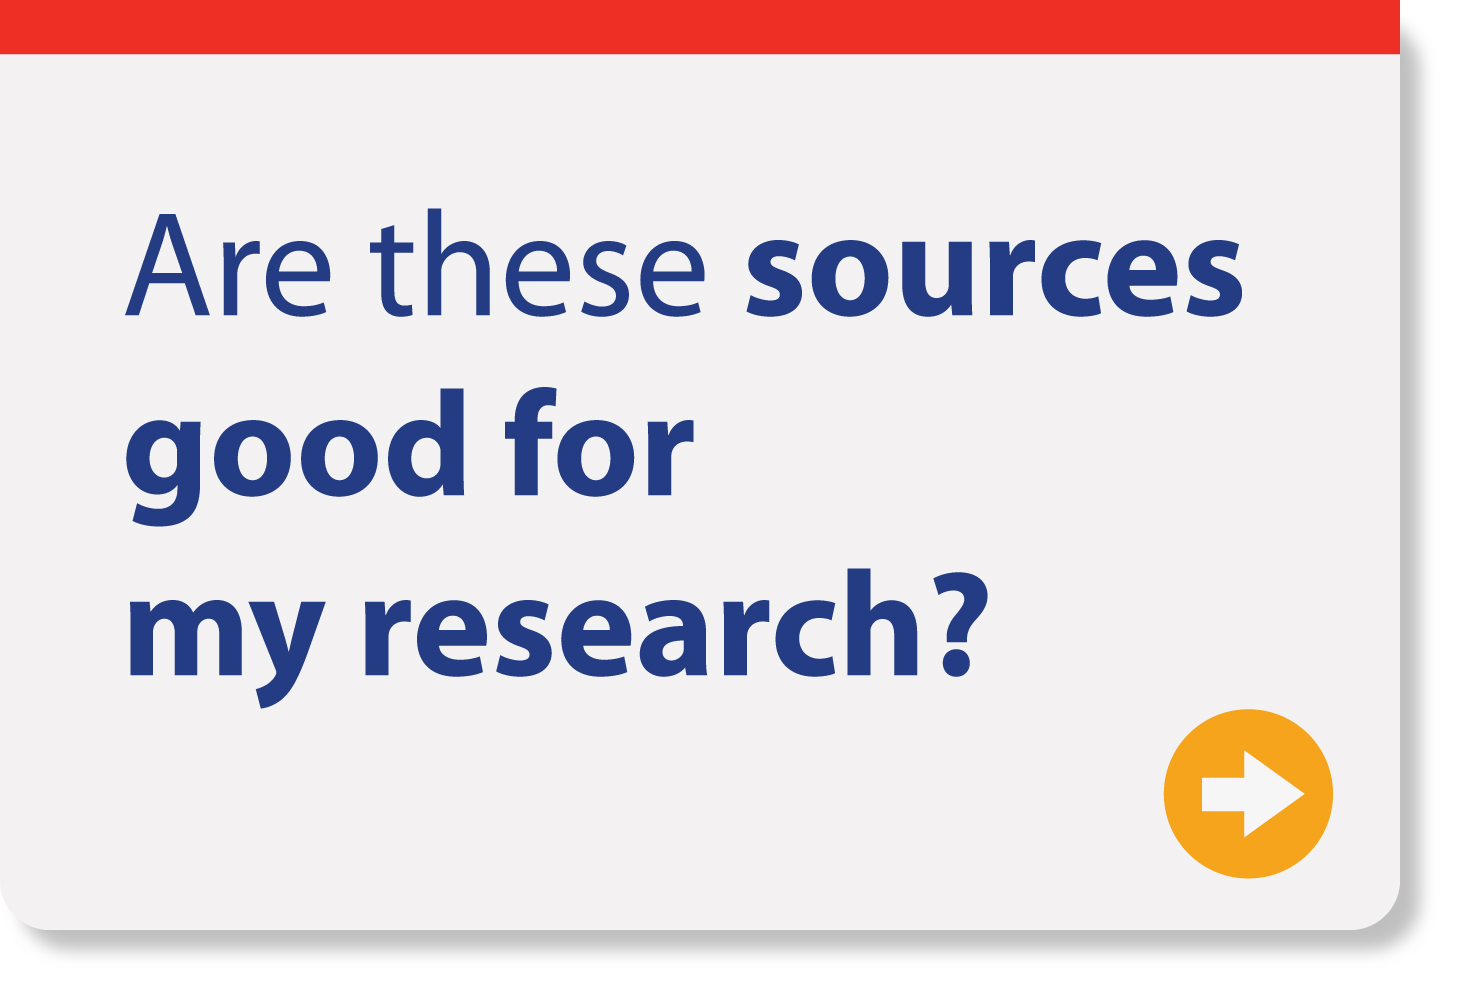 Are these sources good for my research?